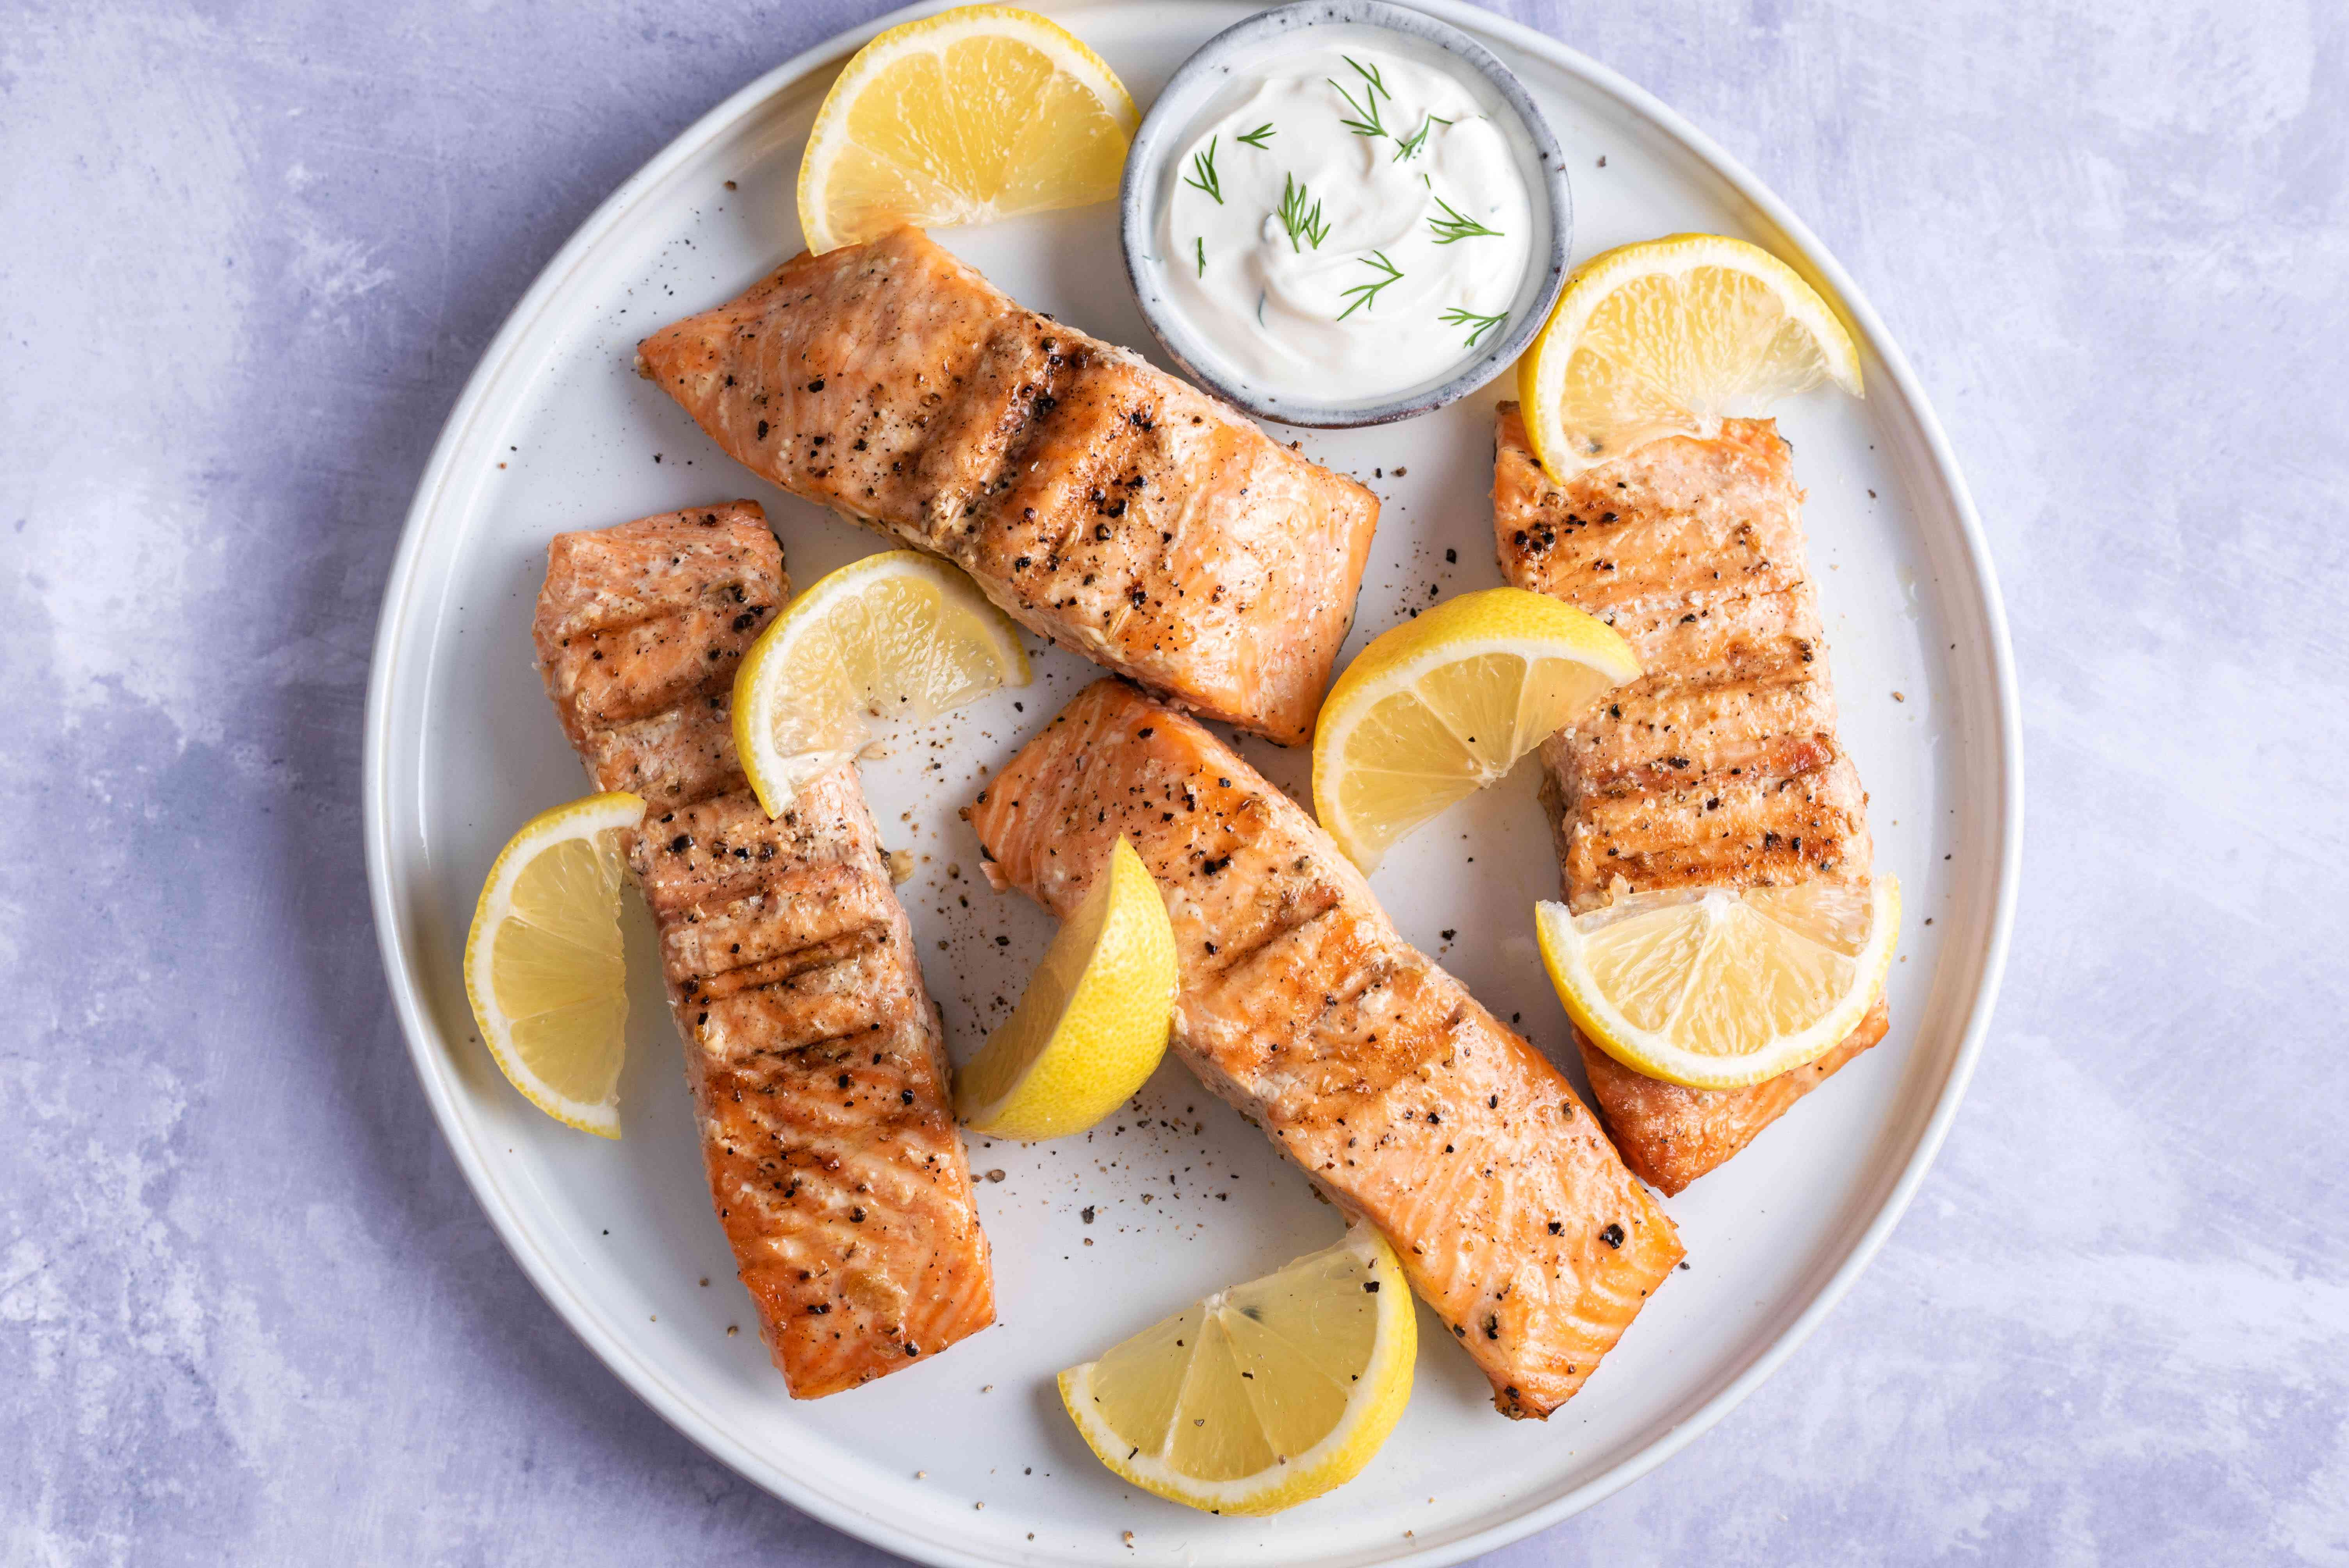 Grilled salmon with lemon wedges